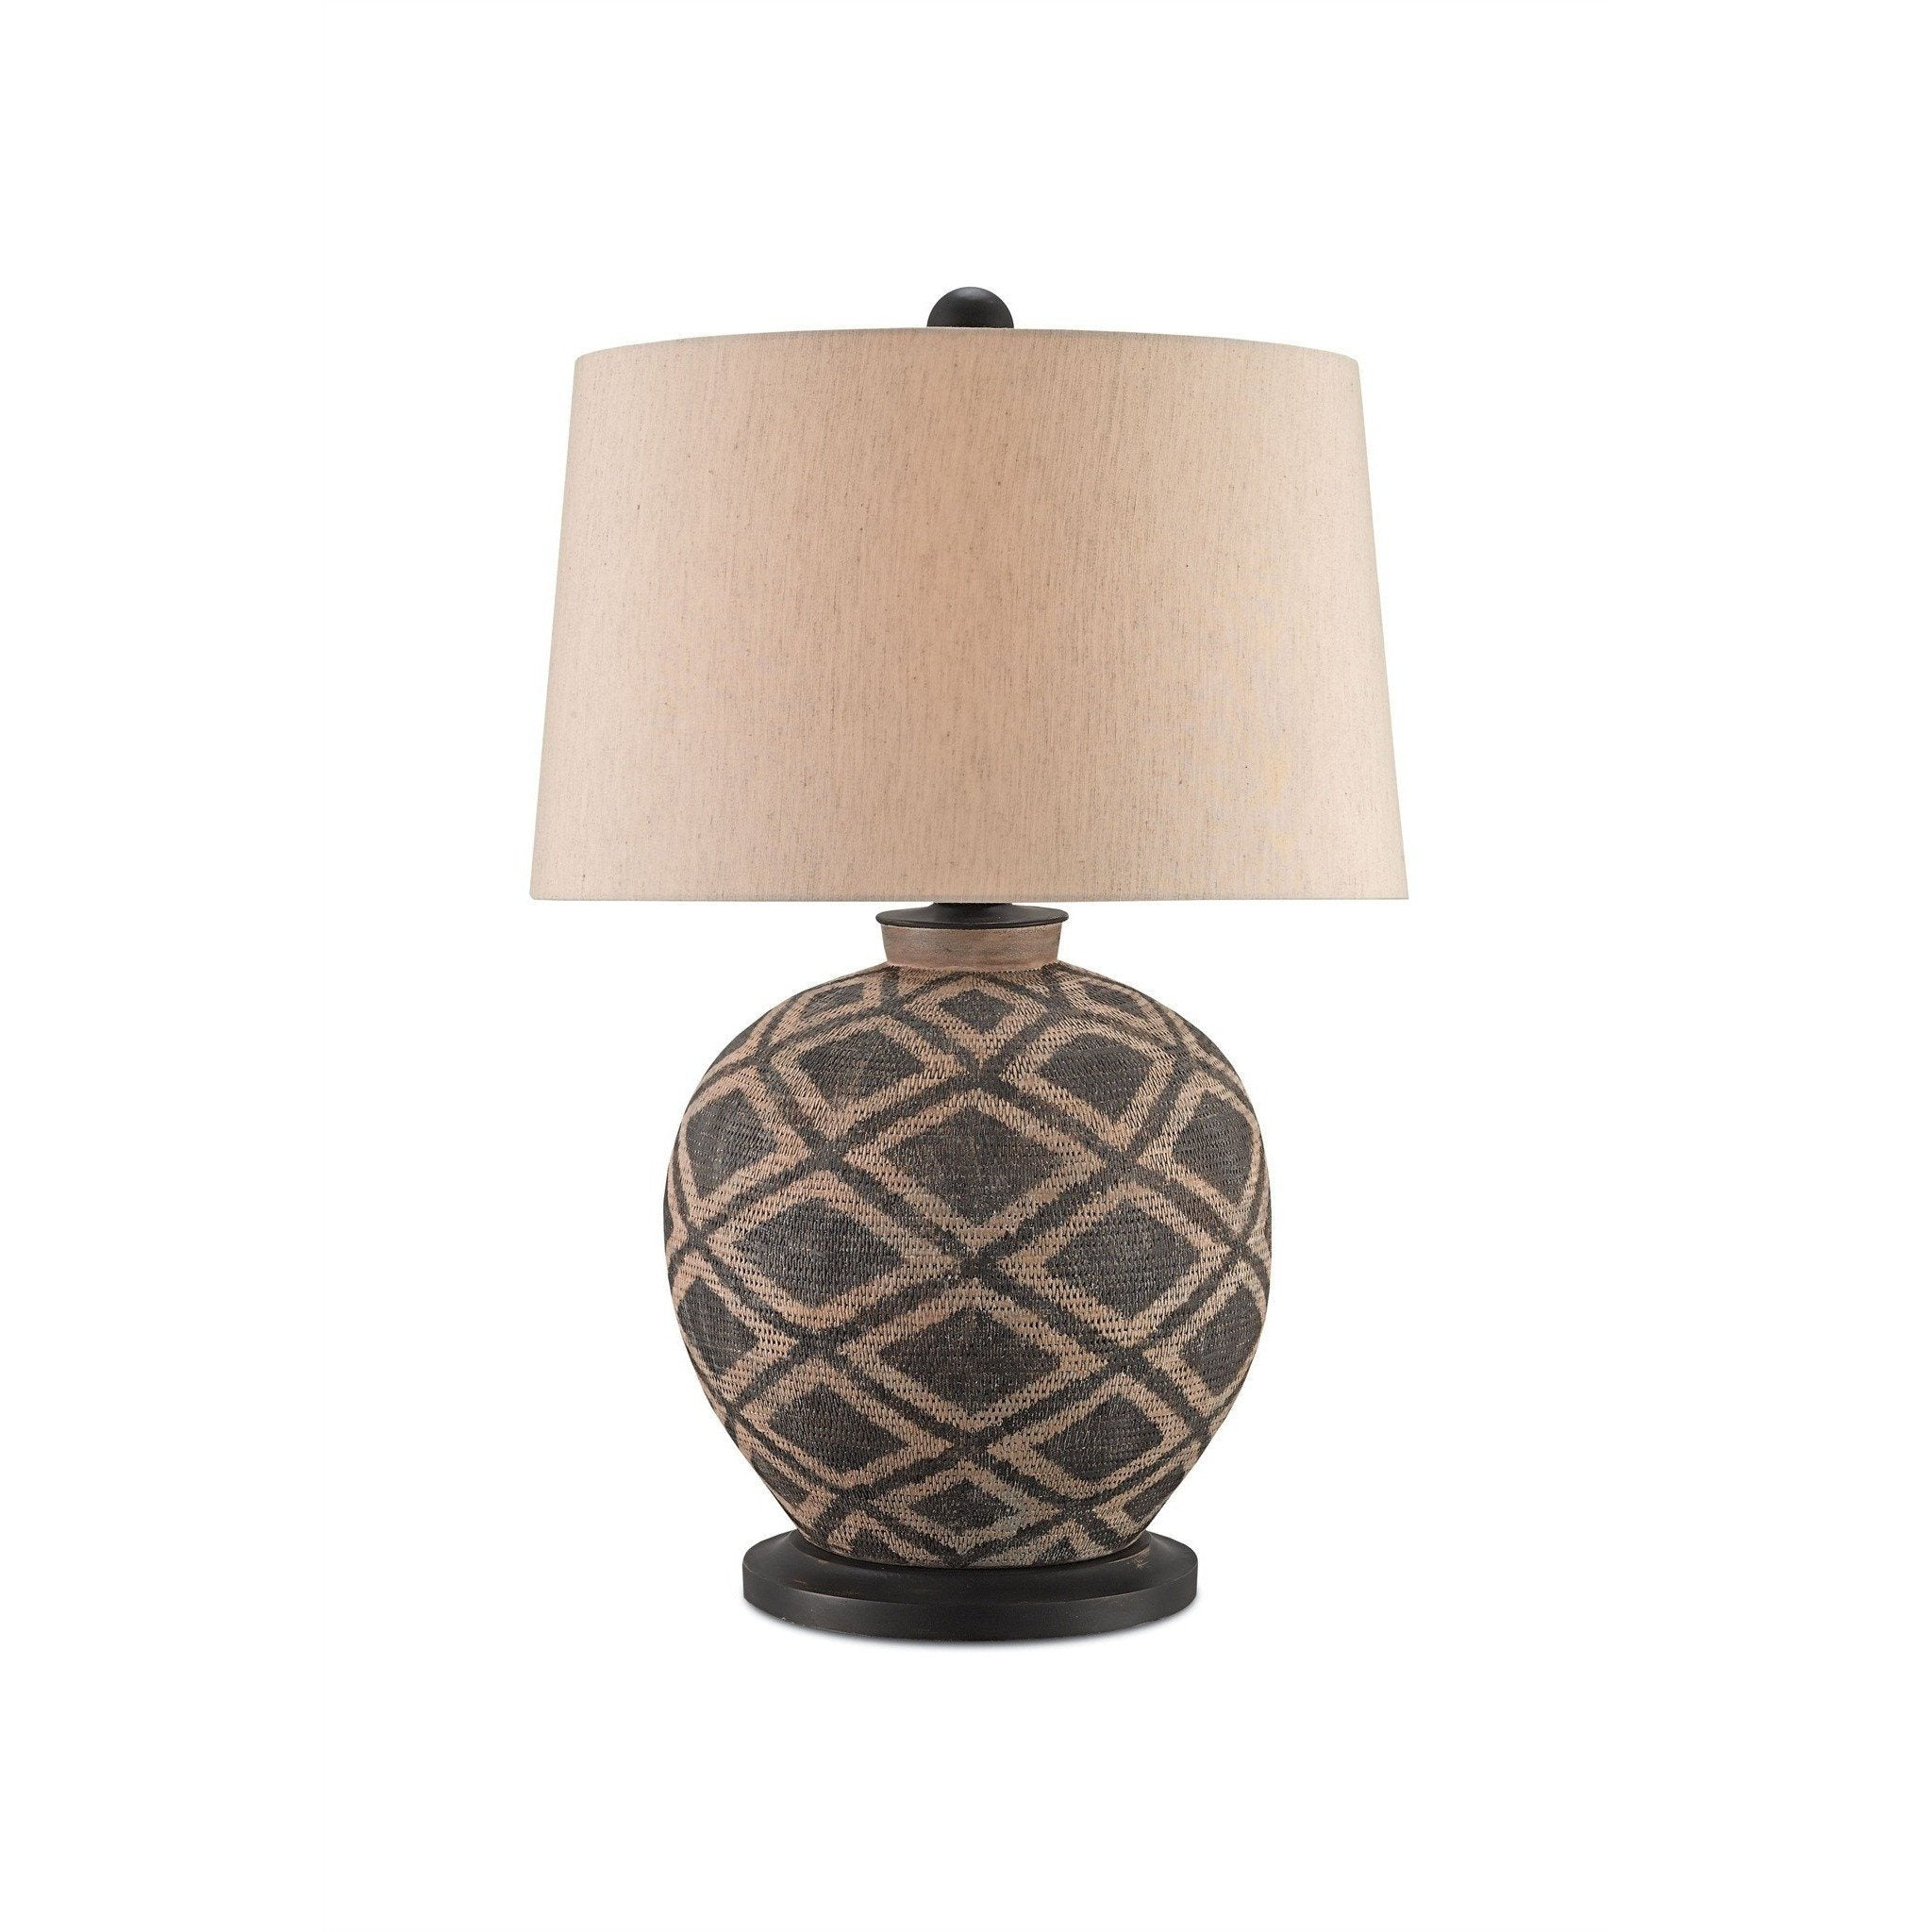 Currey and Company Afrikan Table Lamp 6990 - LOVECUP